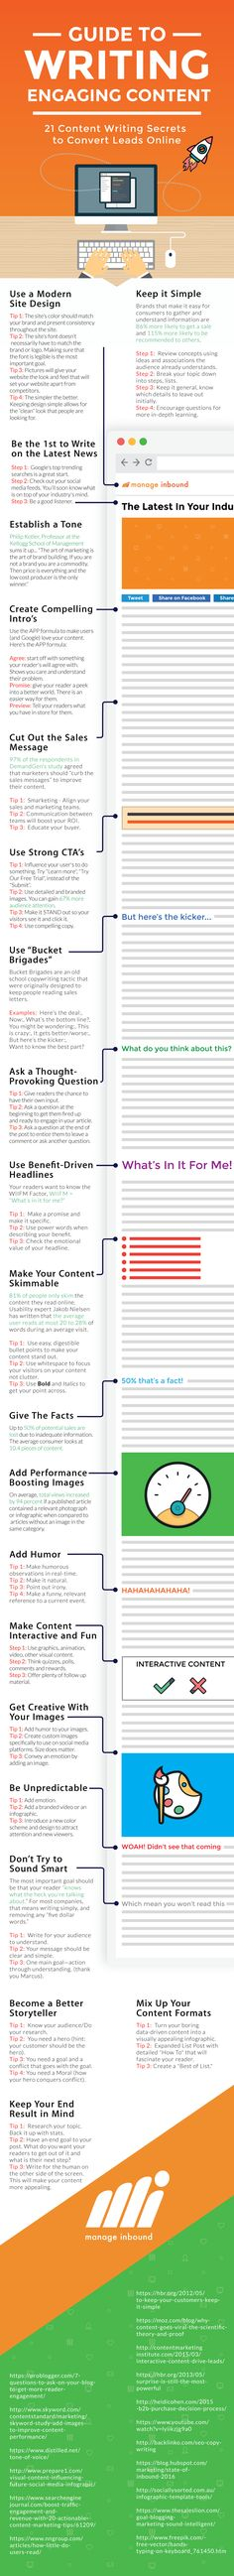 Guide to writing engaging content: 21 Content writing secrets to convert leads online - infographic